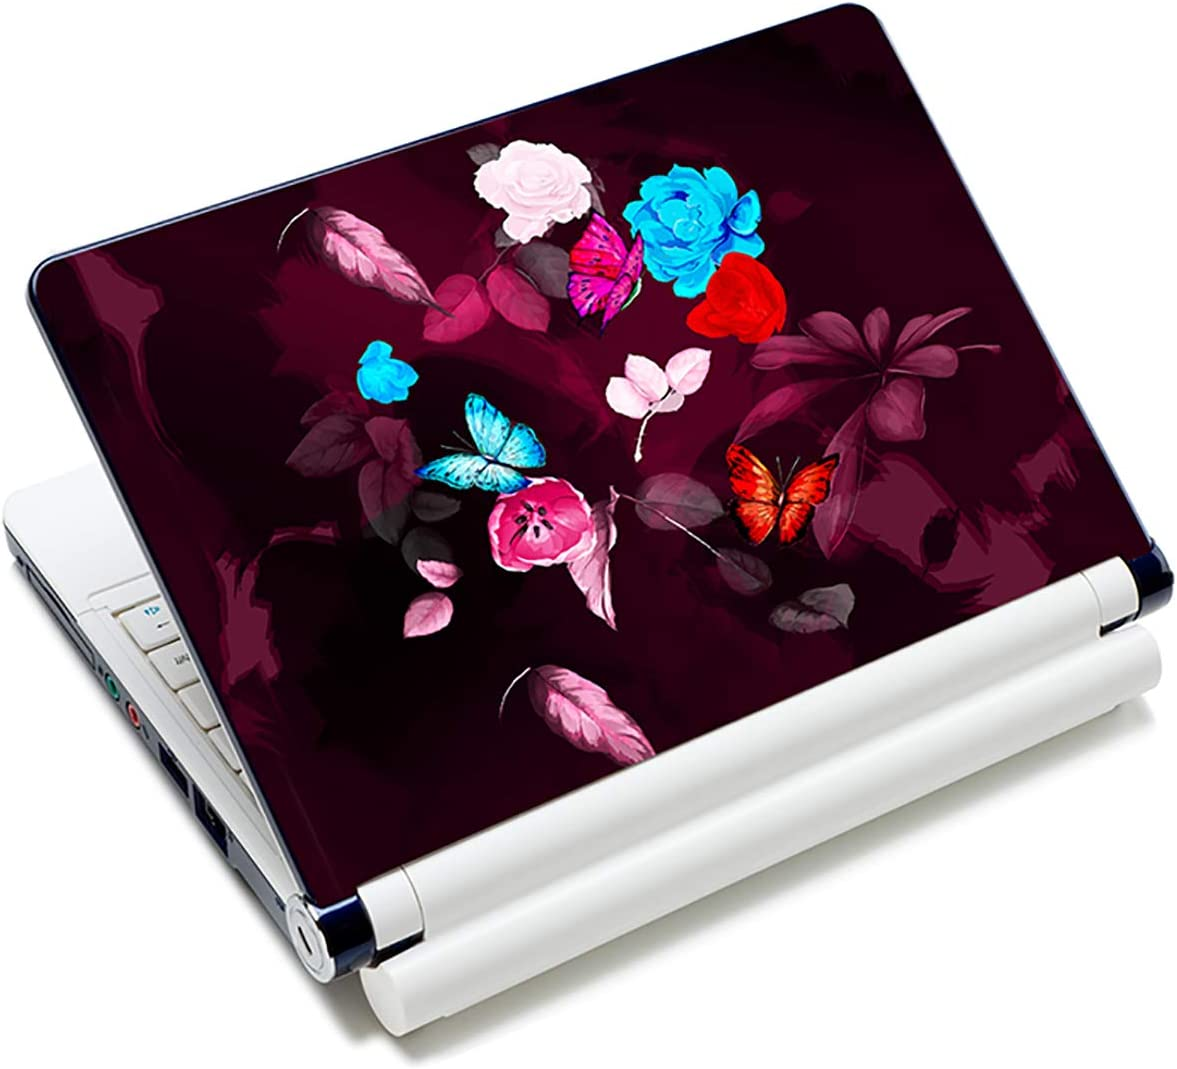 Laptop Stickers Decal,12 13 14 15 15.6 inches Netbook Laptop Skin Sticker Reusable Protector Cover Case for Toshiba Hp Samsung Dell Apple Acer Leonovo Sony Asus Laptop Notebook (Butterfly & Flower)